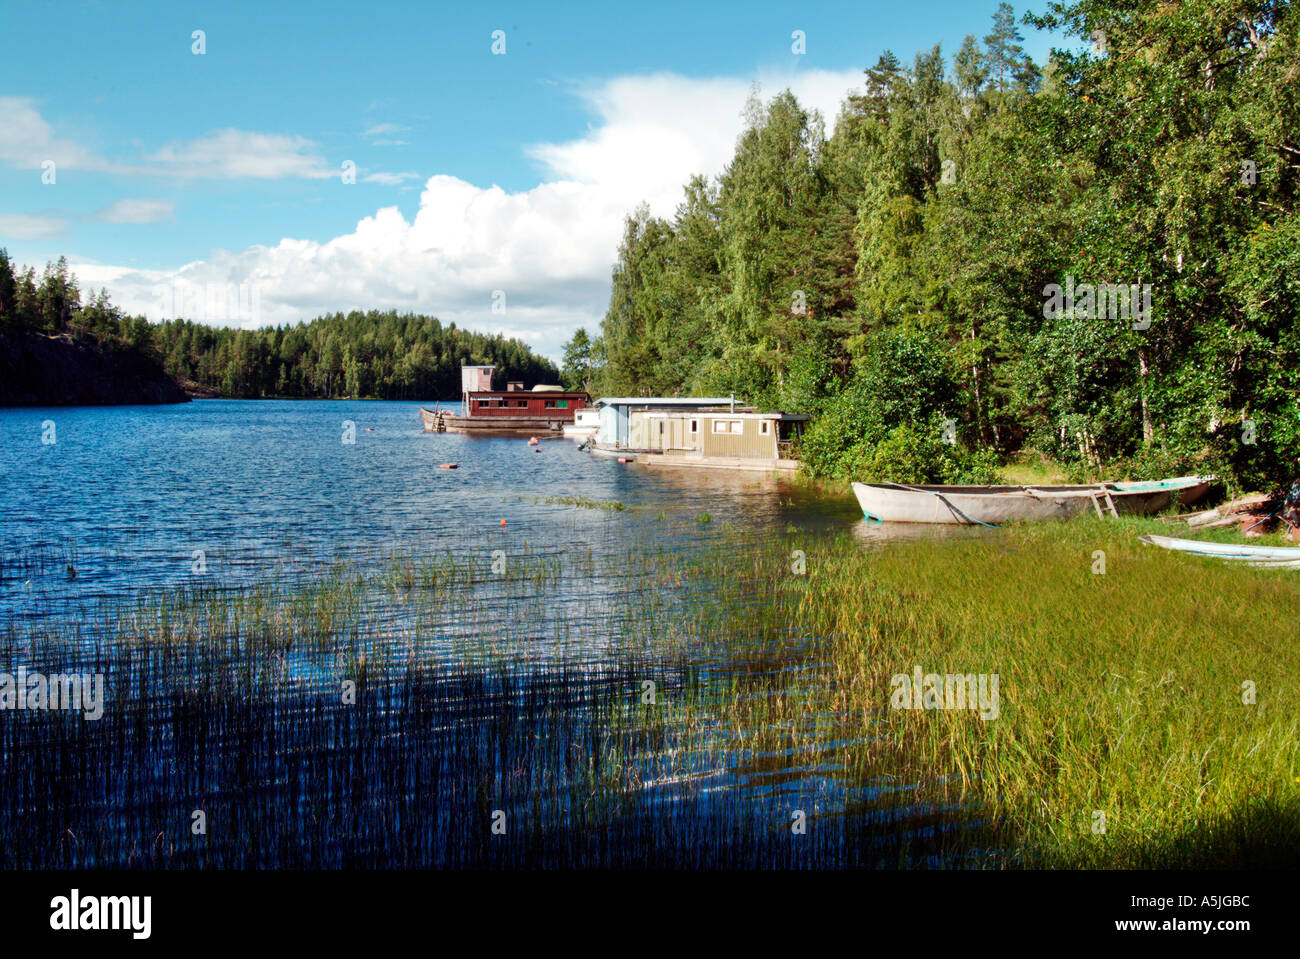 lake distrikt middle Finland lake Saimaa boats on the lakefront old house boats Stock Photo